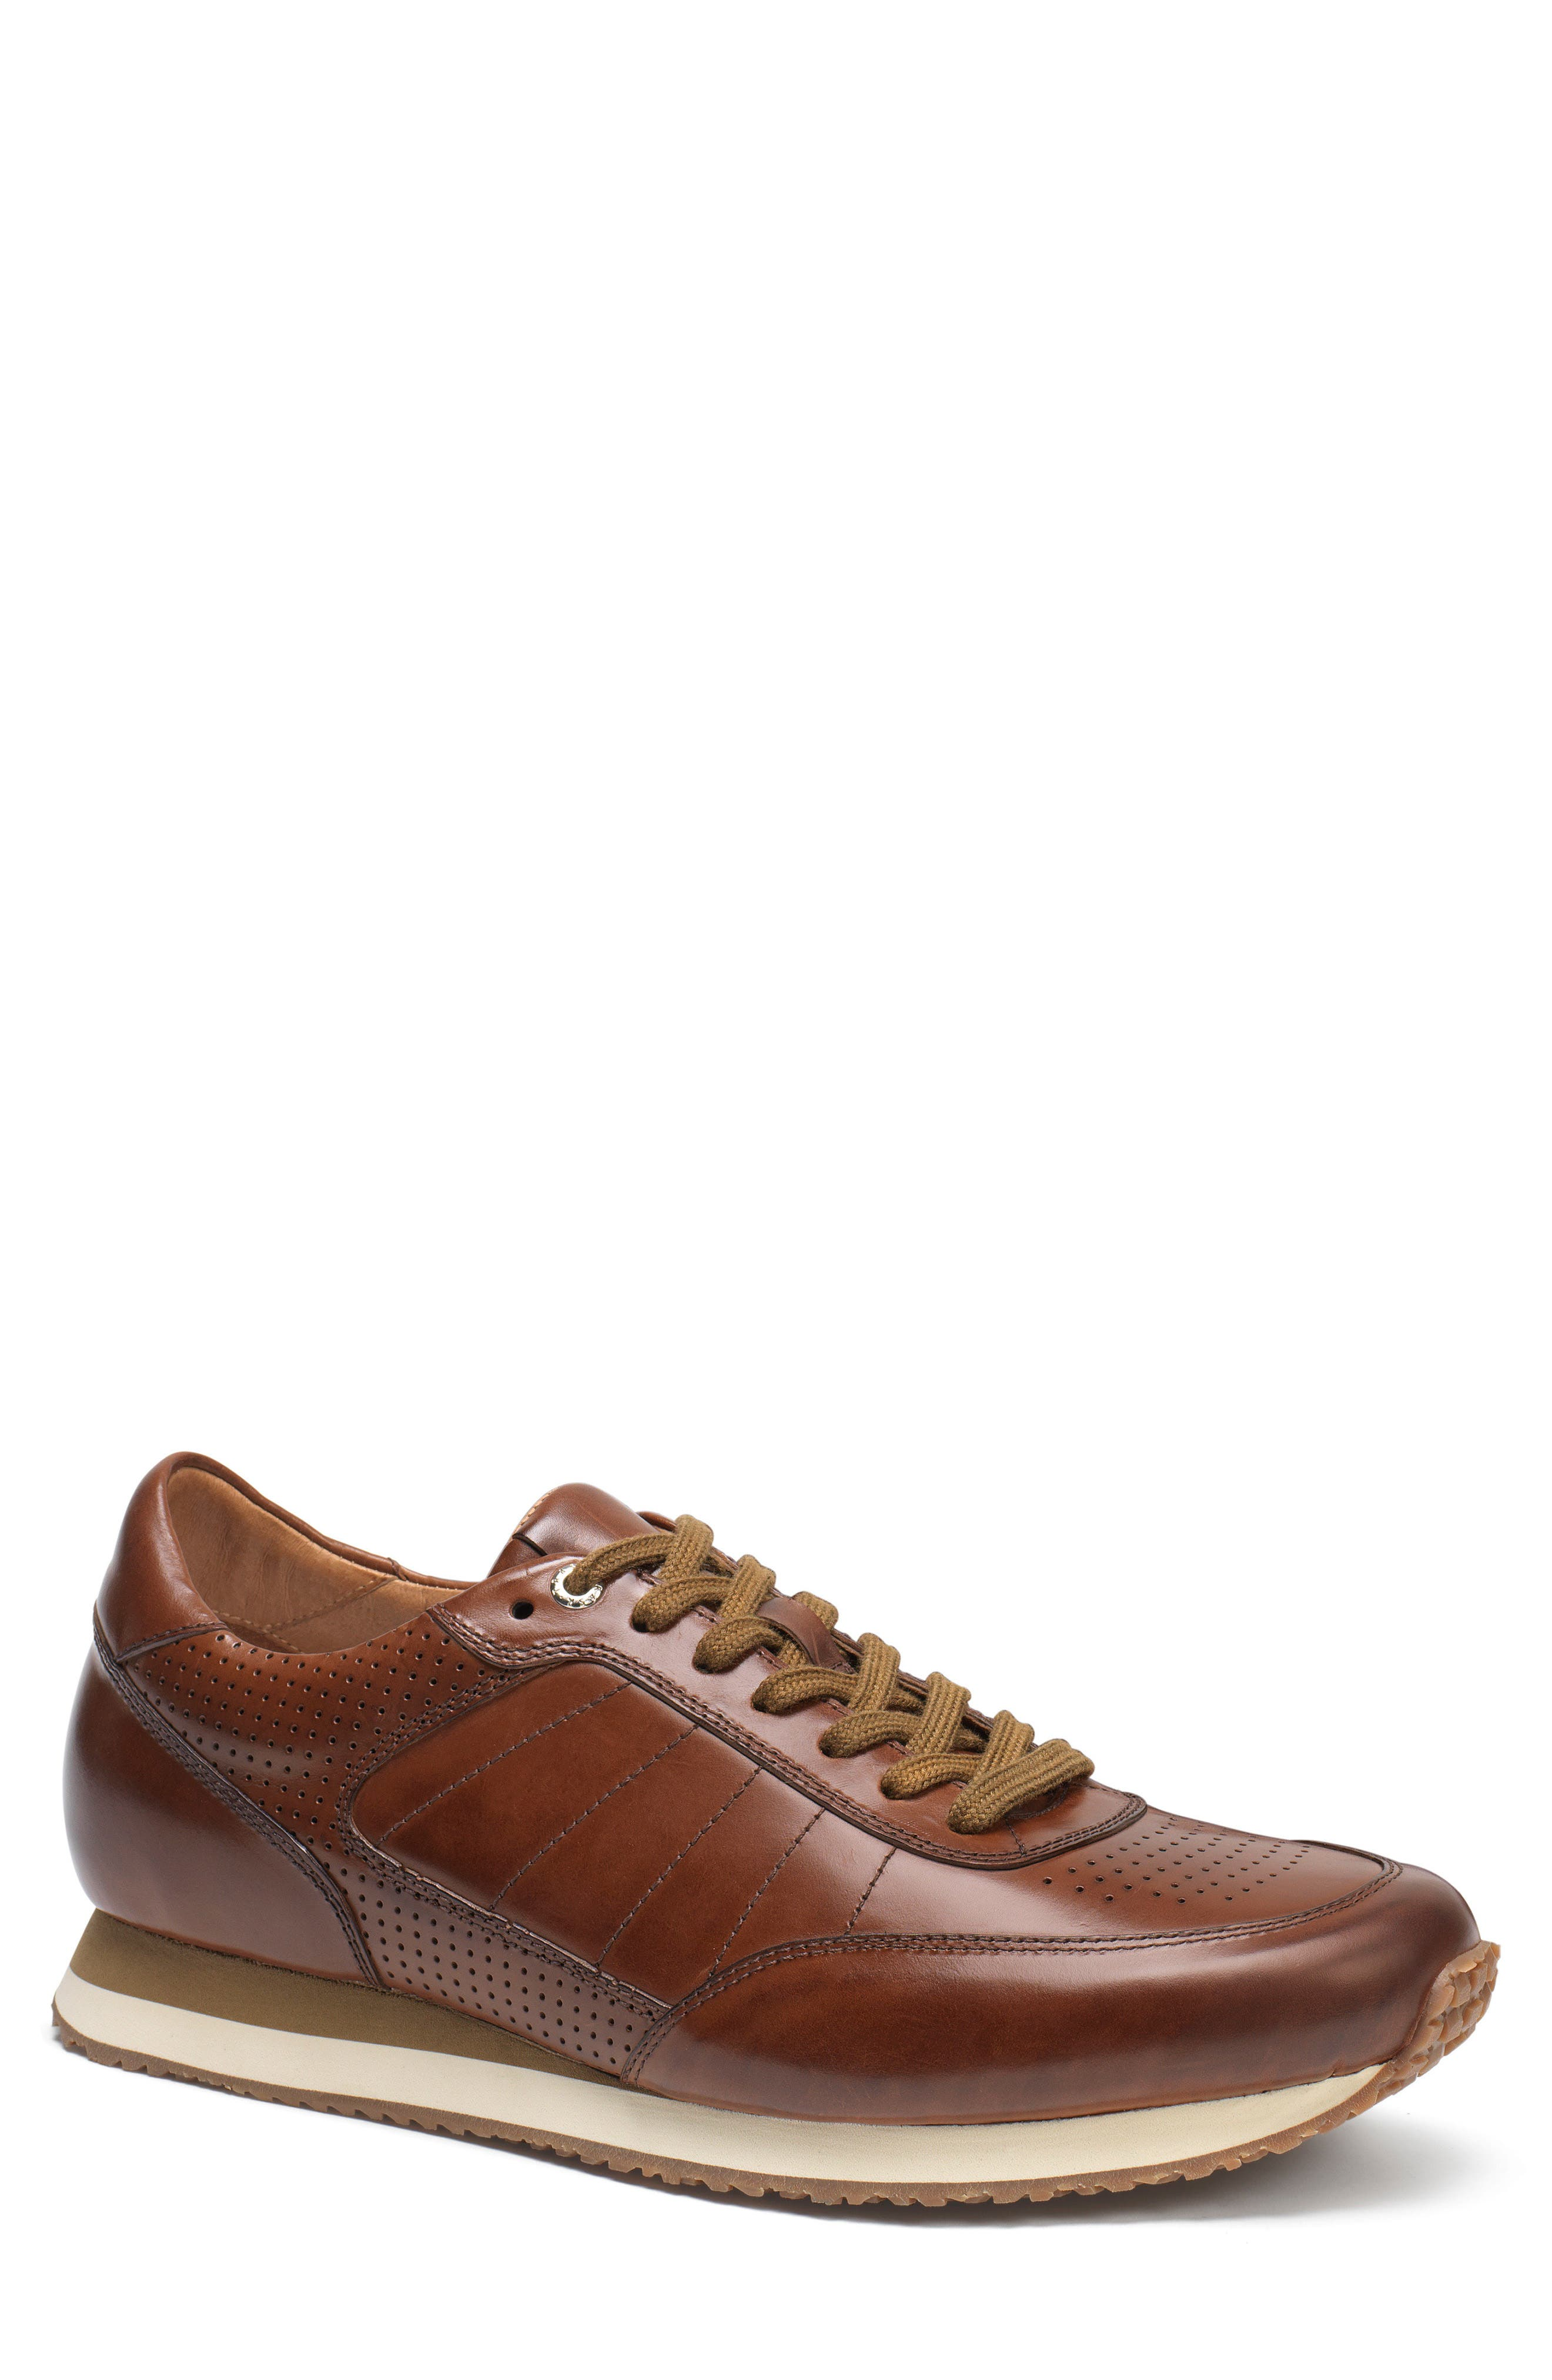 Aiden Sneaker,                             Main thumbnail 1, color,                             Brown Leather